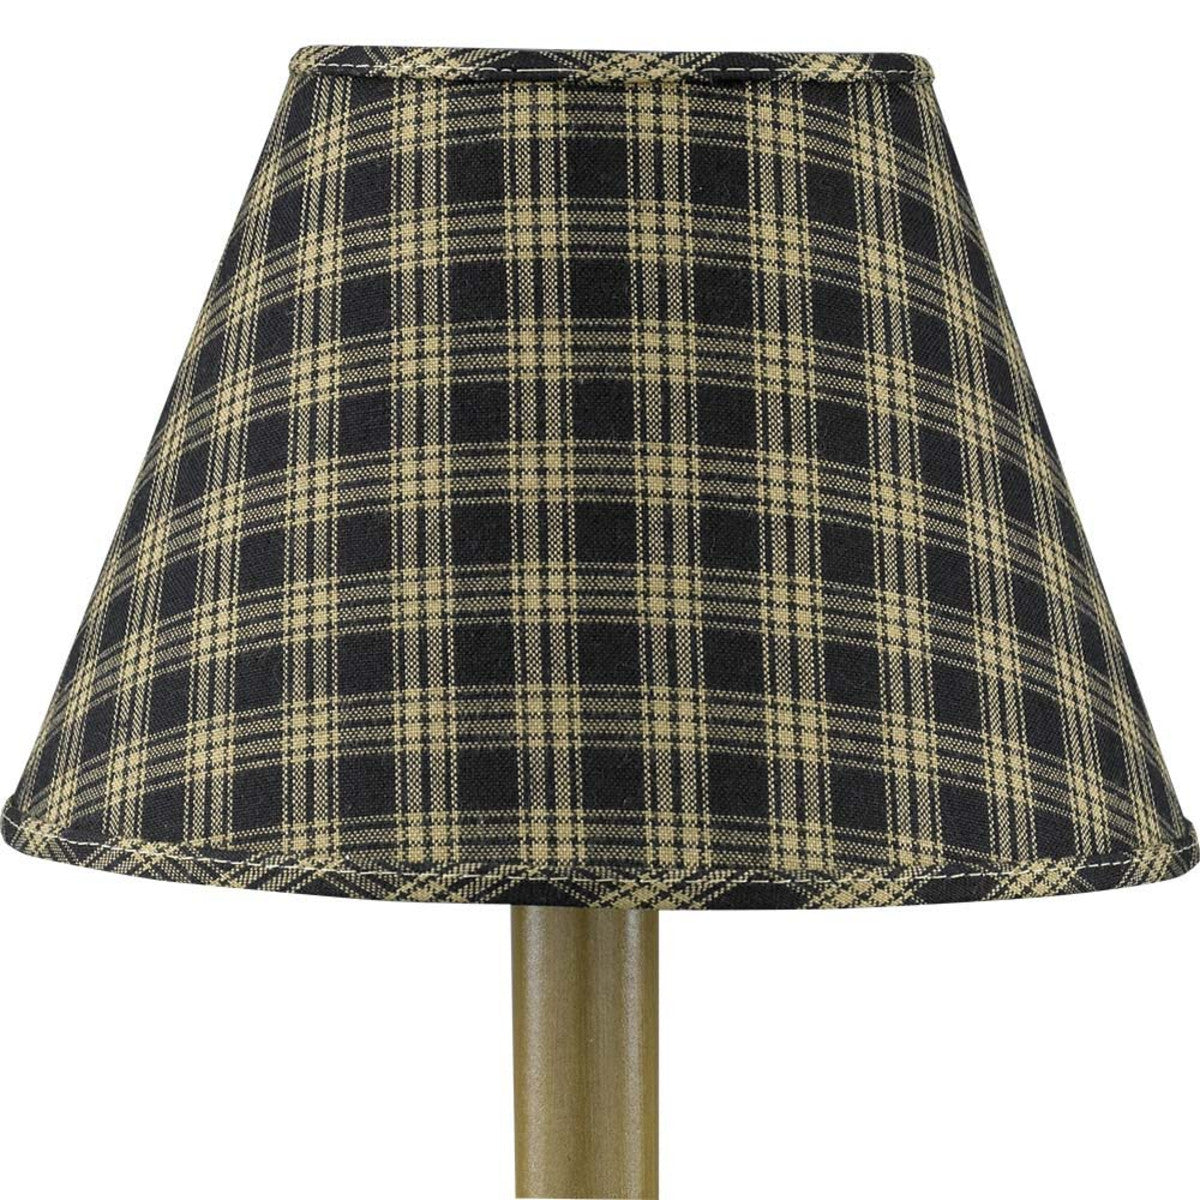 STURBRIDGE SHADE - BLACK